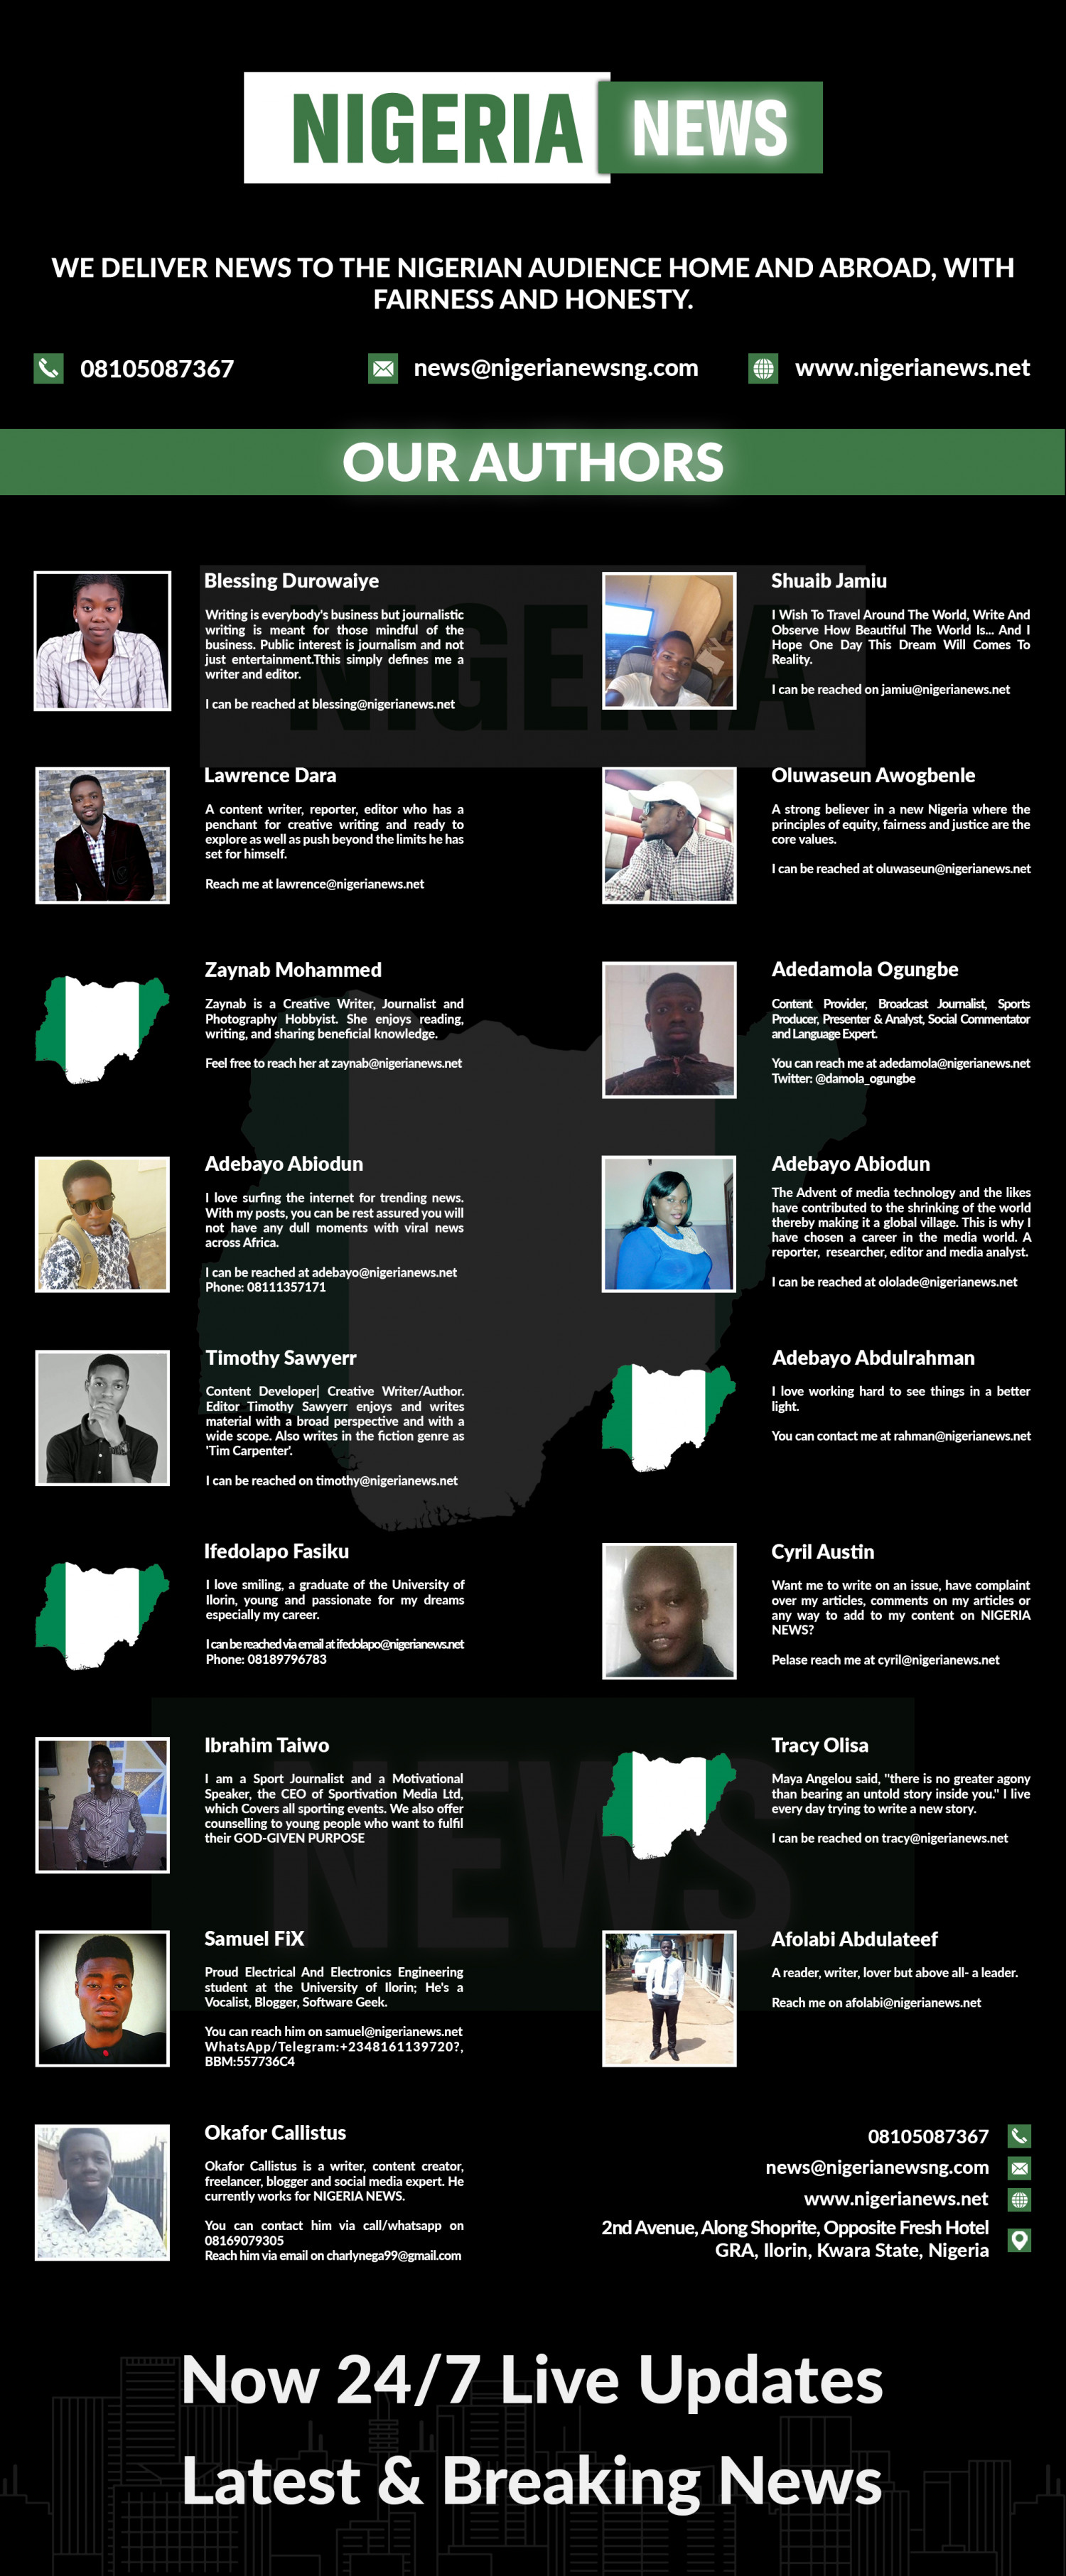 Nigeria News, latest Top news headlines from Nigeria and Africa. Infographic